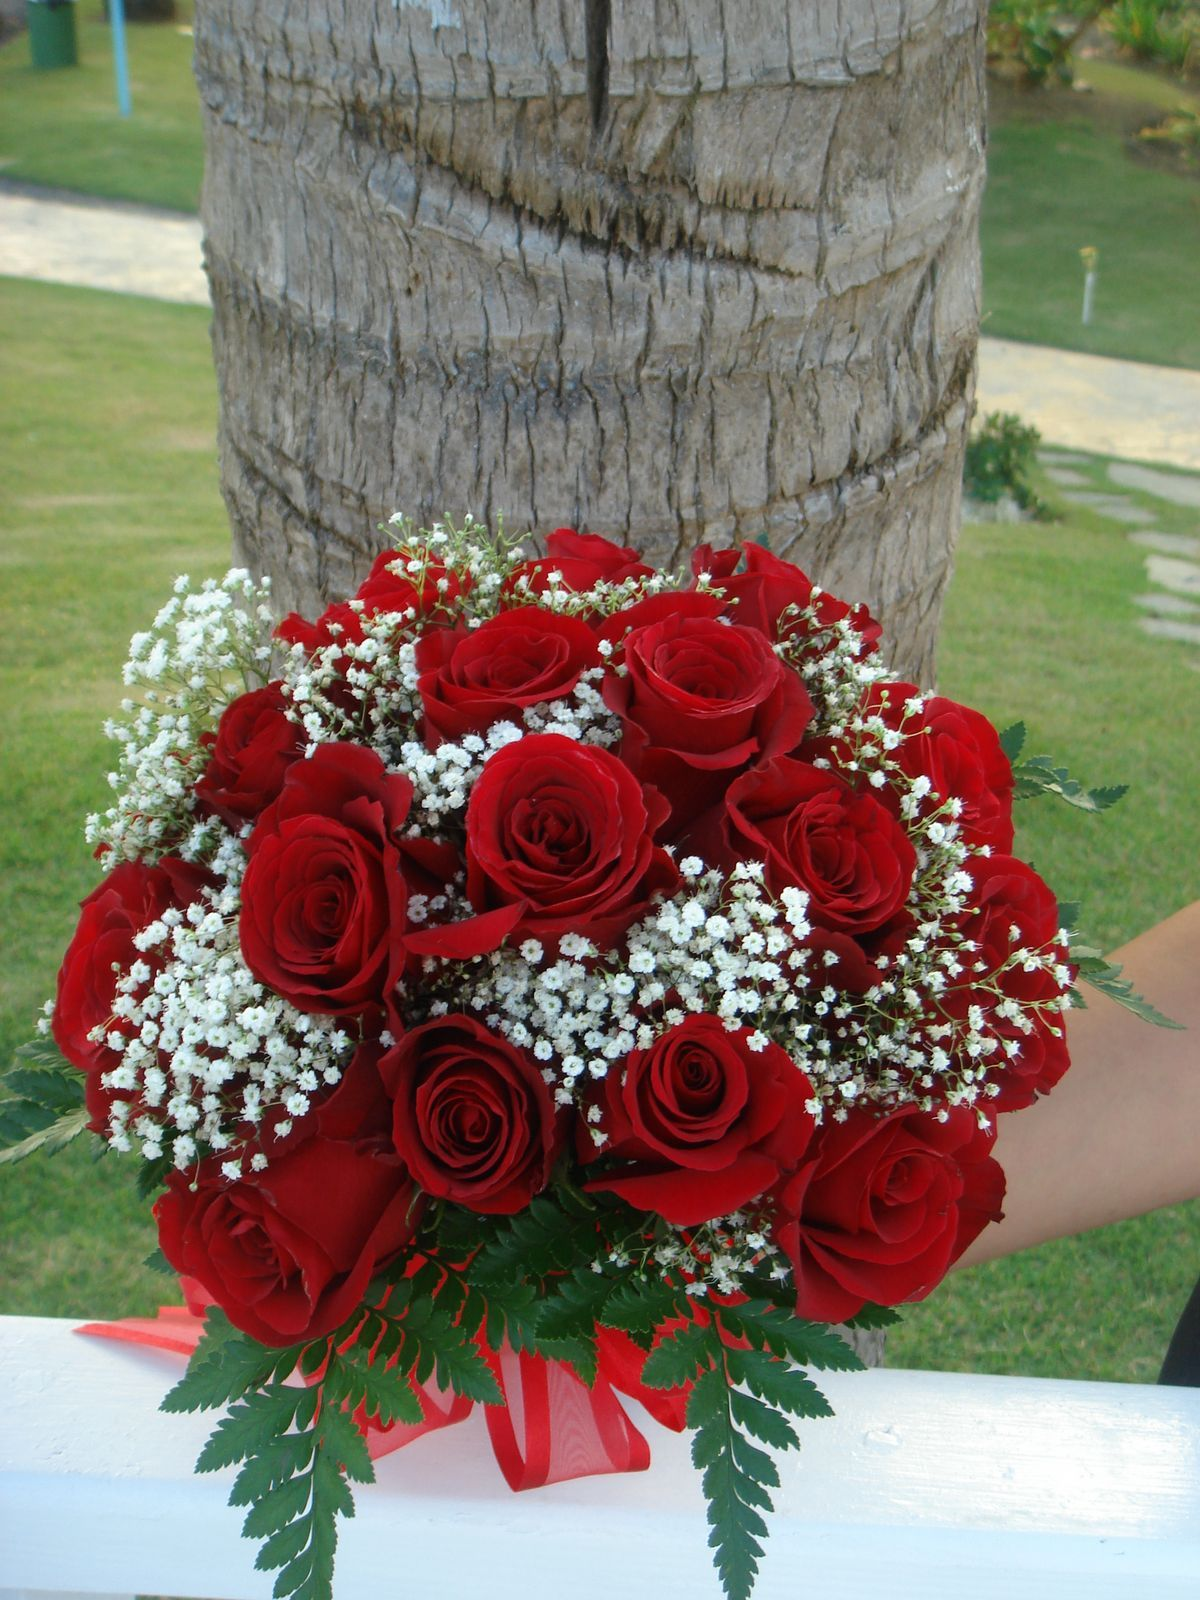 Bouquet Bridal Red Roses And Small White Flowers